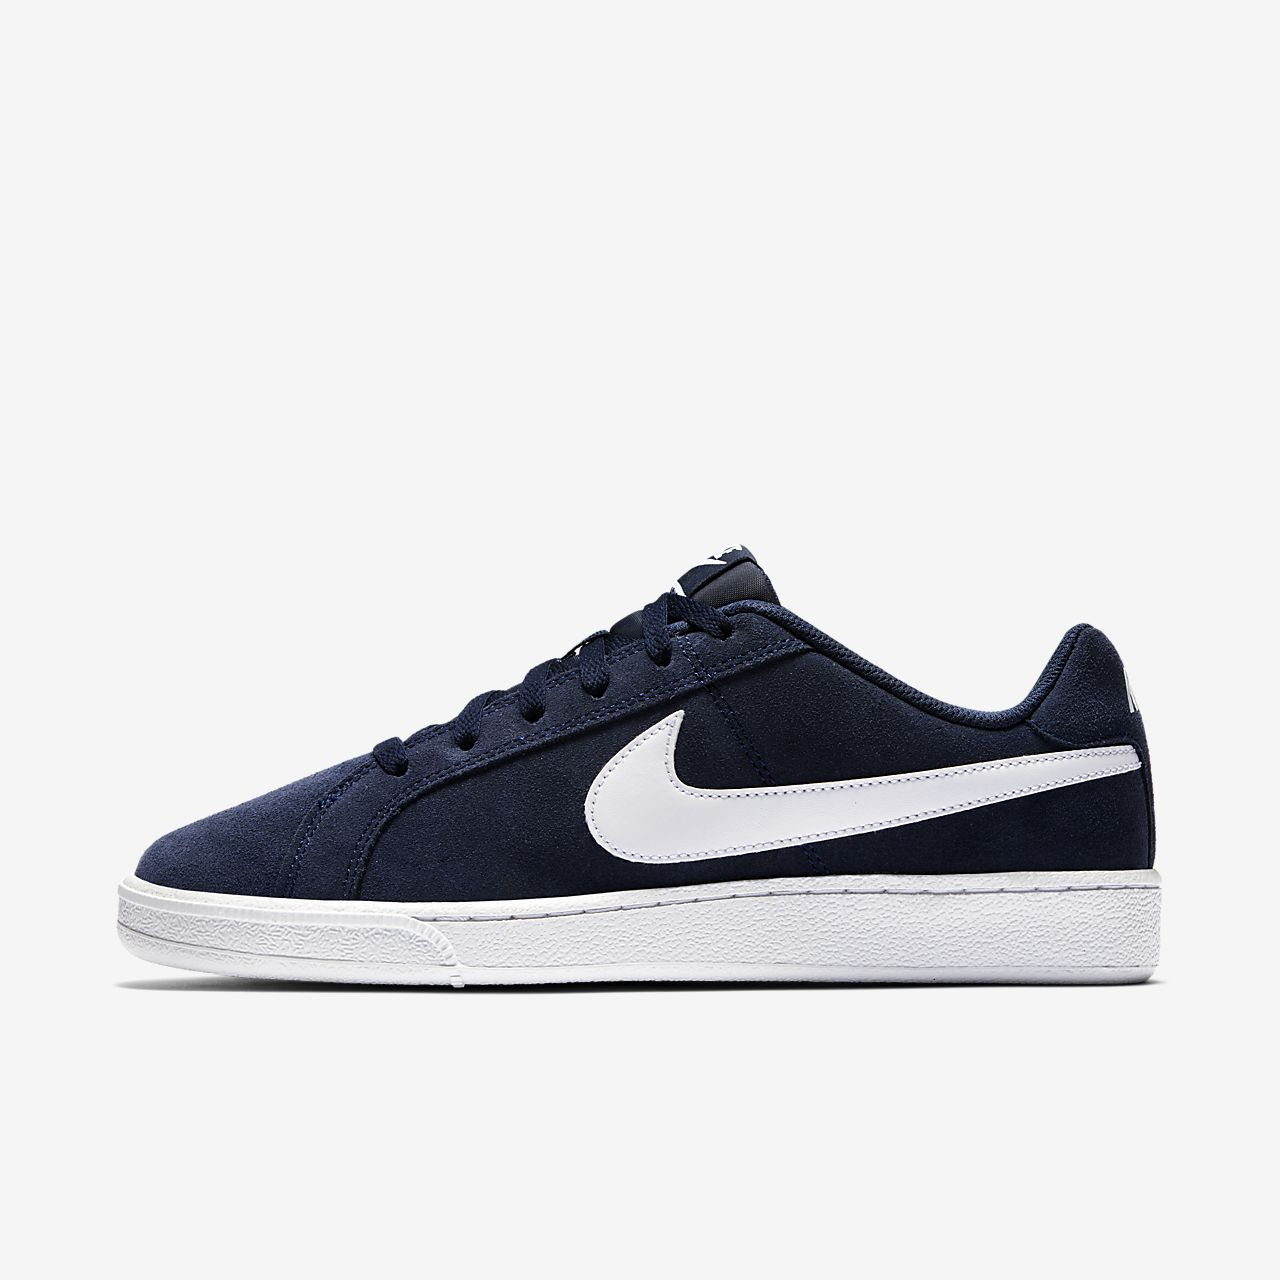 Nike Court Royale, Zapatillas Hombre, Azul/Blanco (Midnight Navy/White), 42 EU